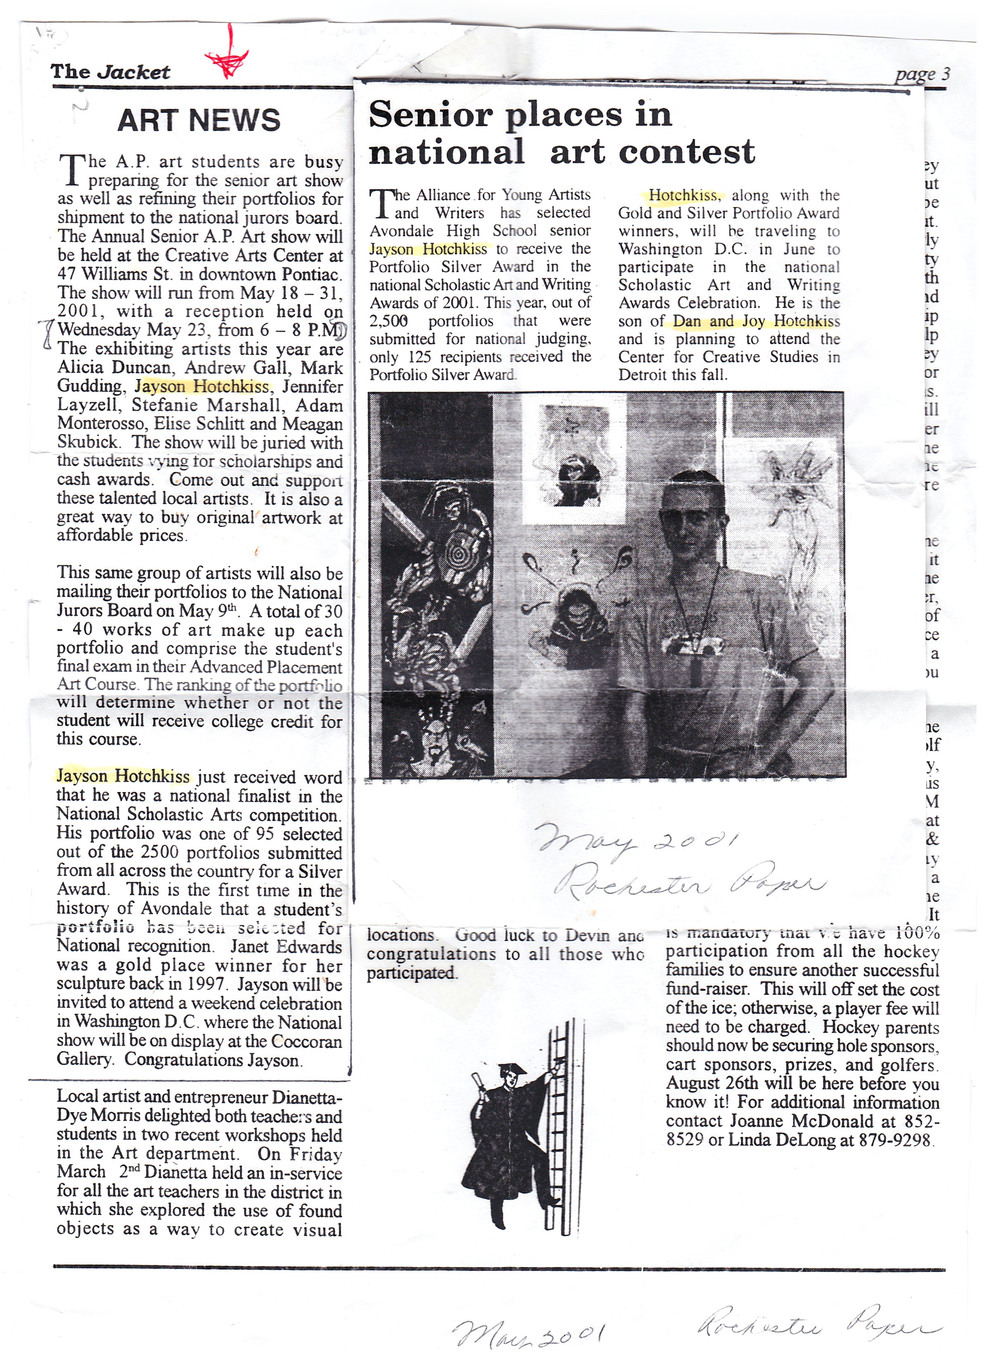 ...an old article my grandmother sent me of an art achievement i received during my senior year...